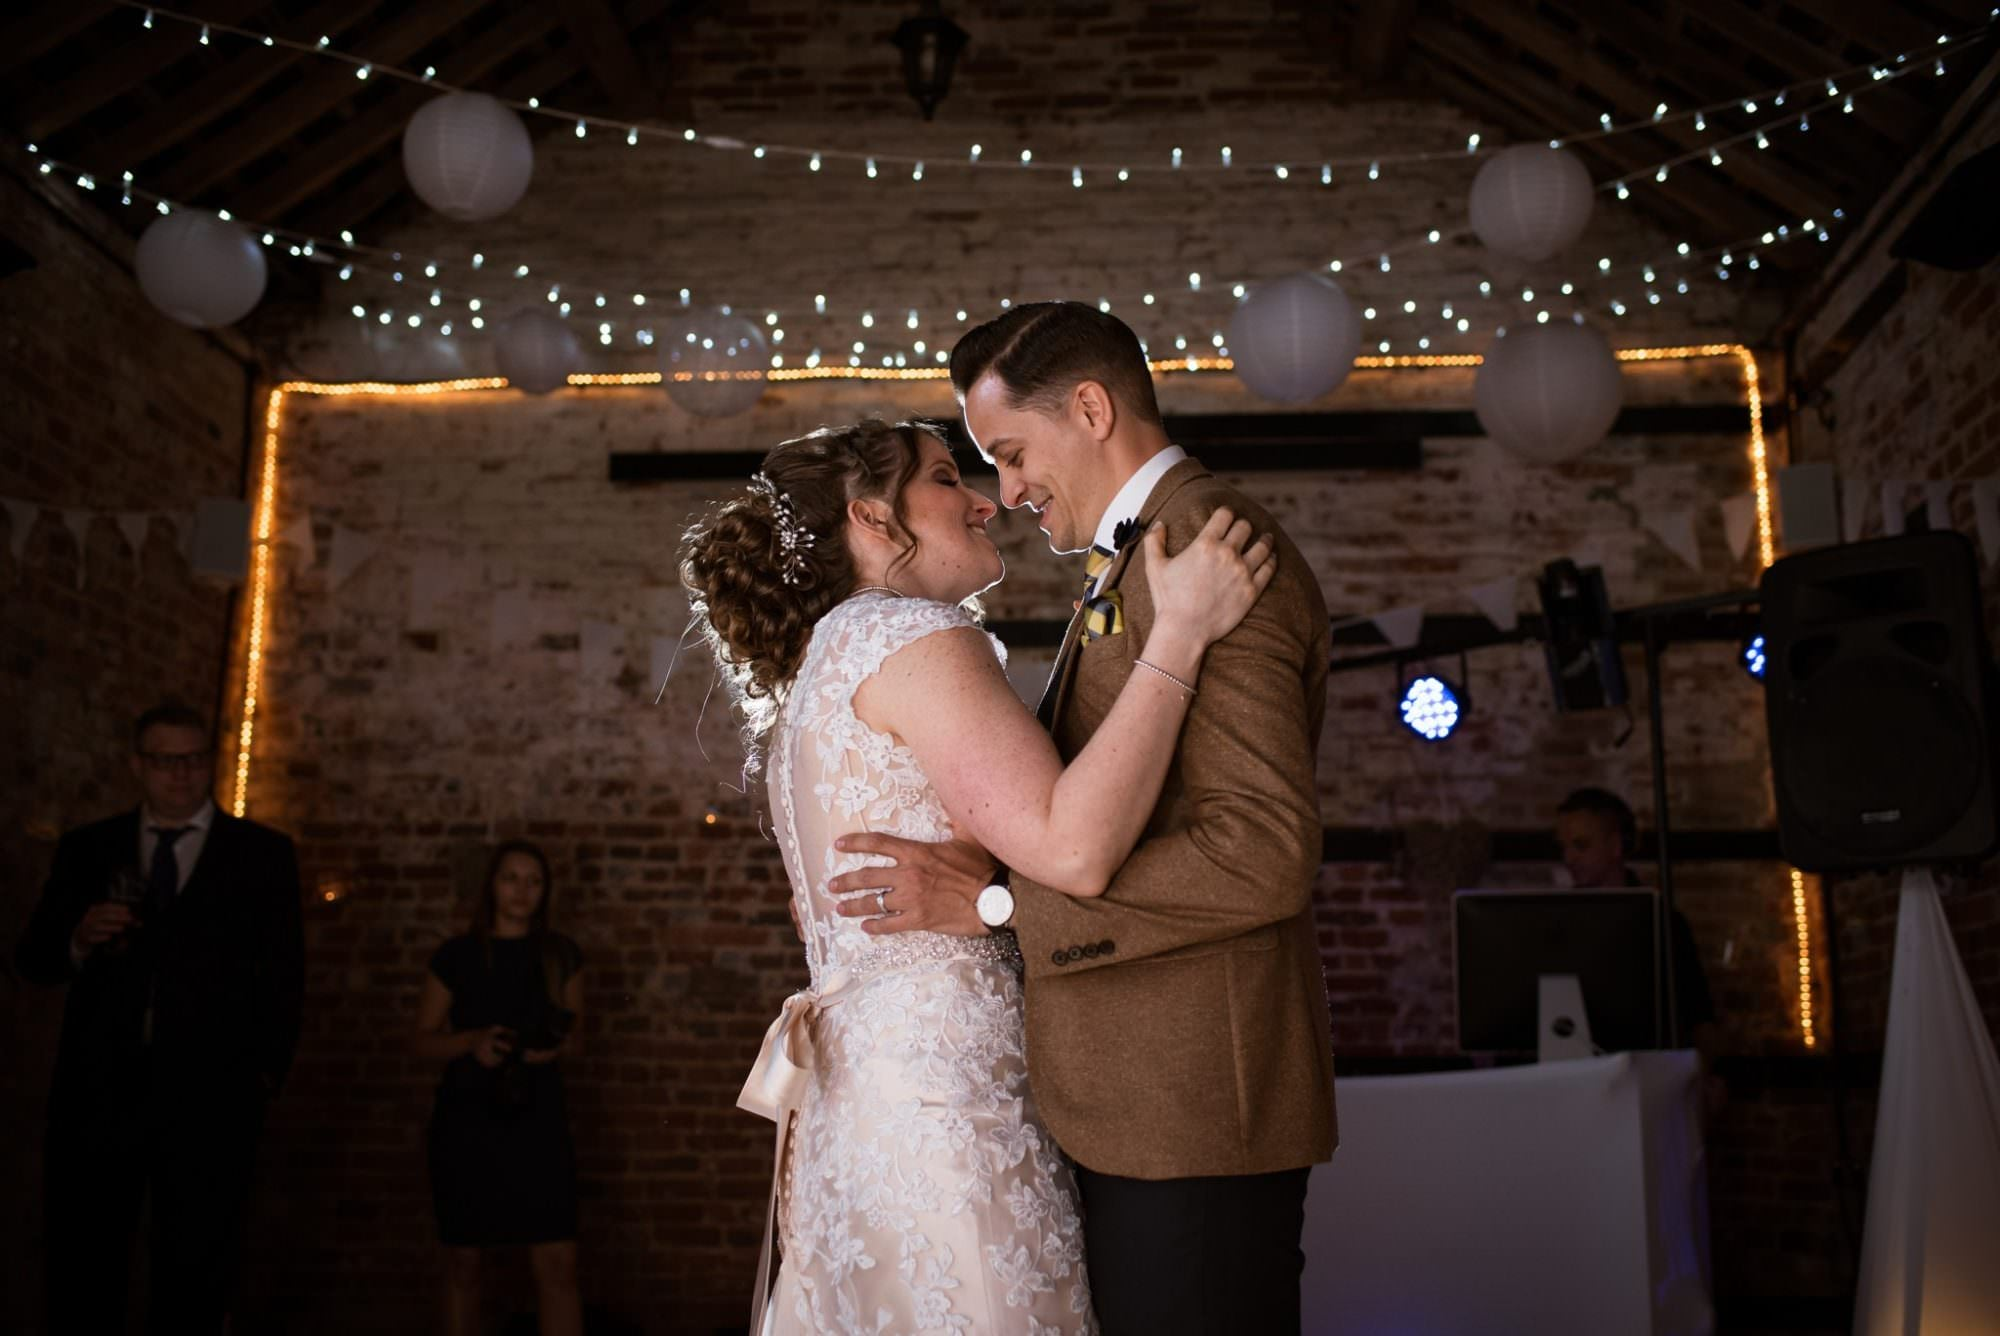 First Dance photo at The Three Tuns Hampshire Wedding venue